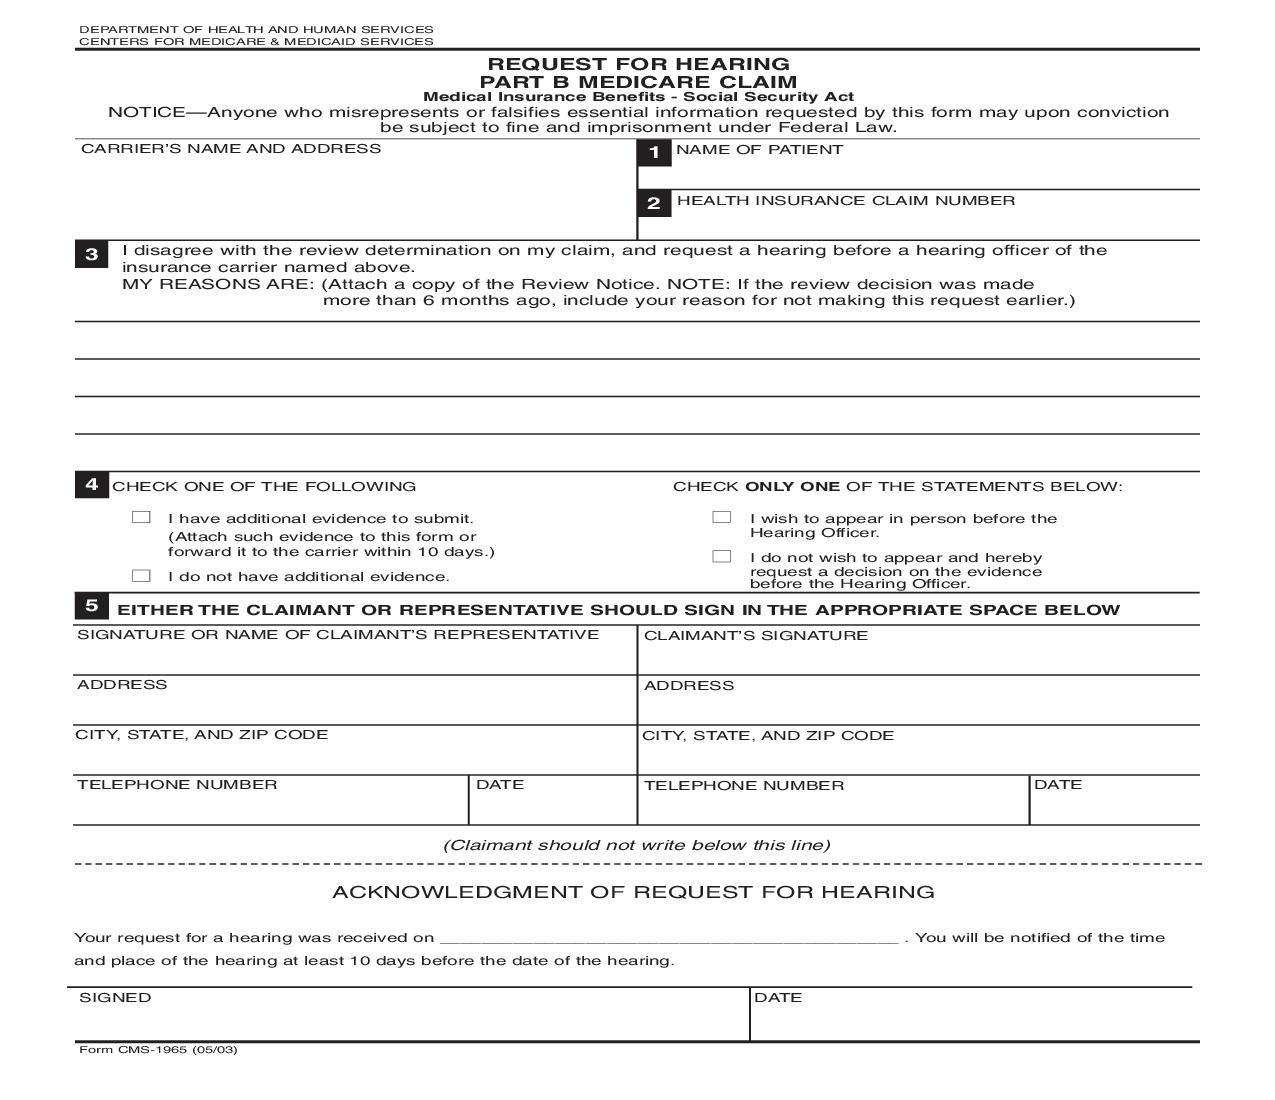 Request For Hearing Part B Medicare Claim {CMS-1965} | Pdf Fpdf Doc Docx | Official Federal Forms